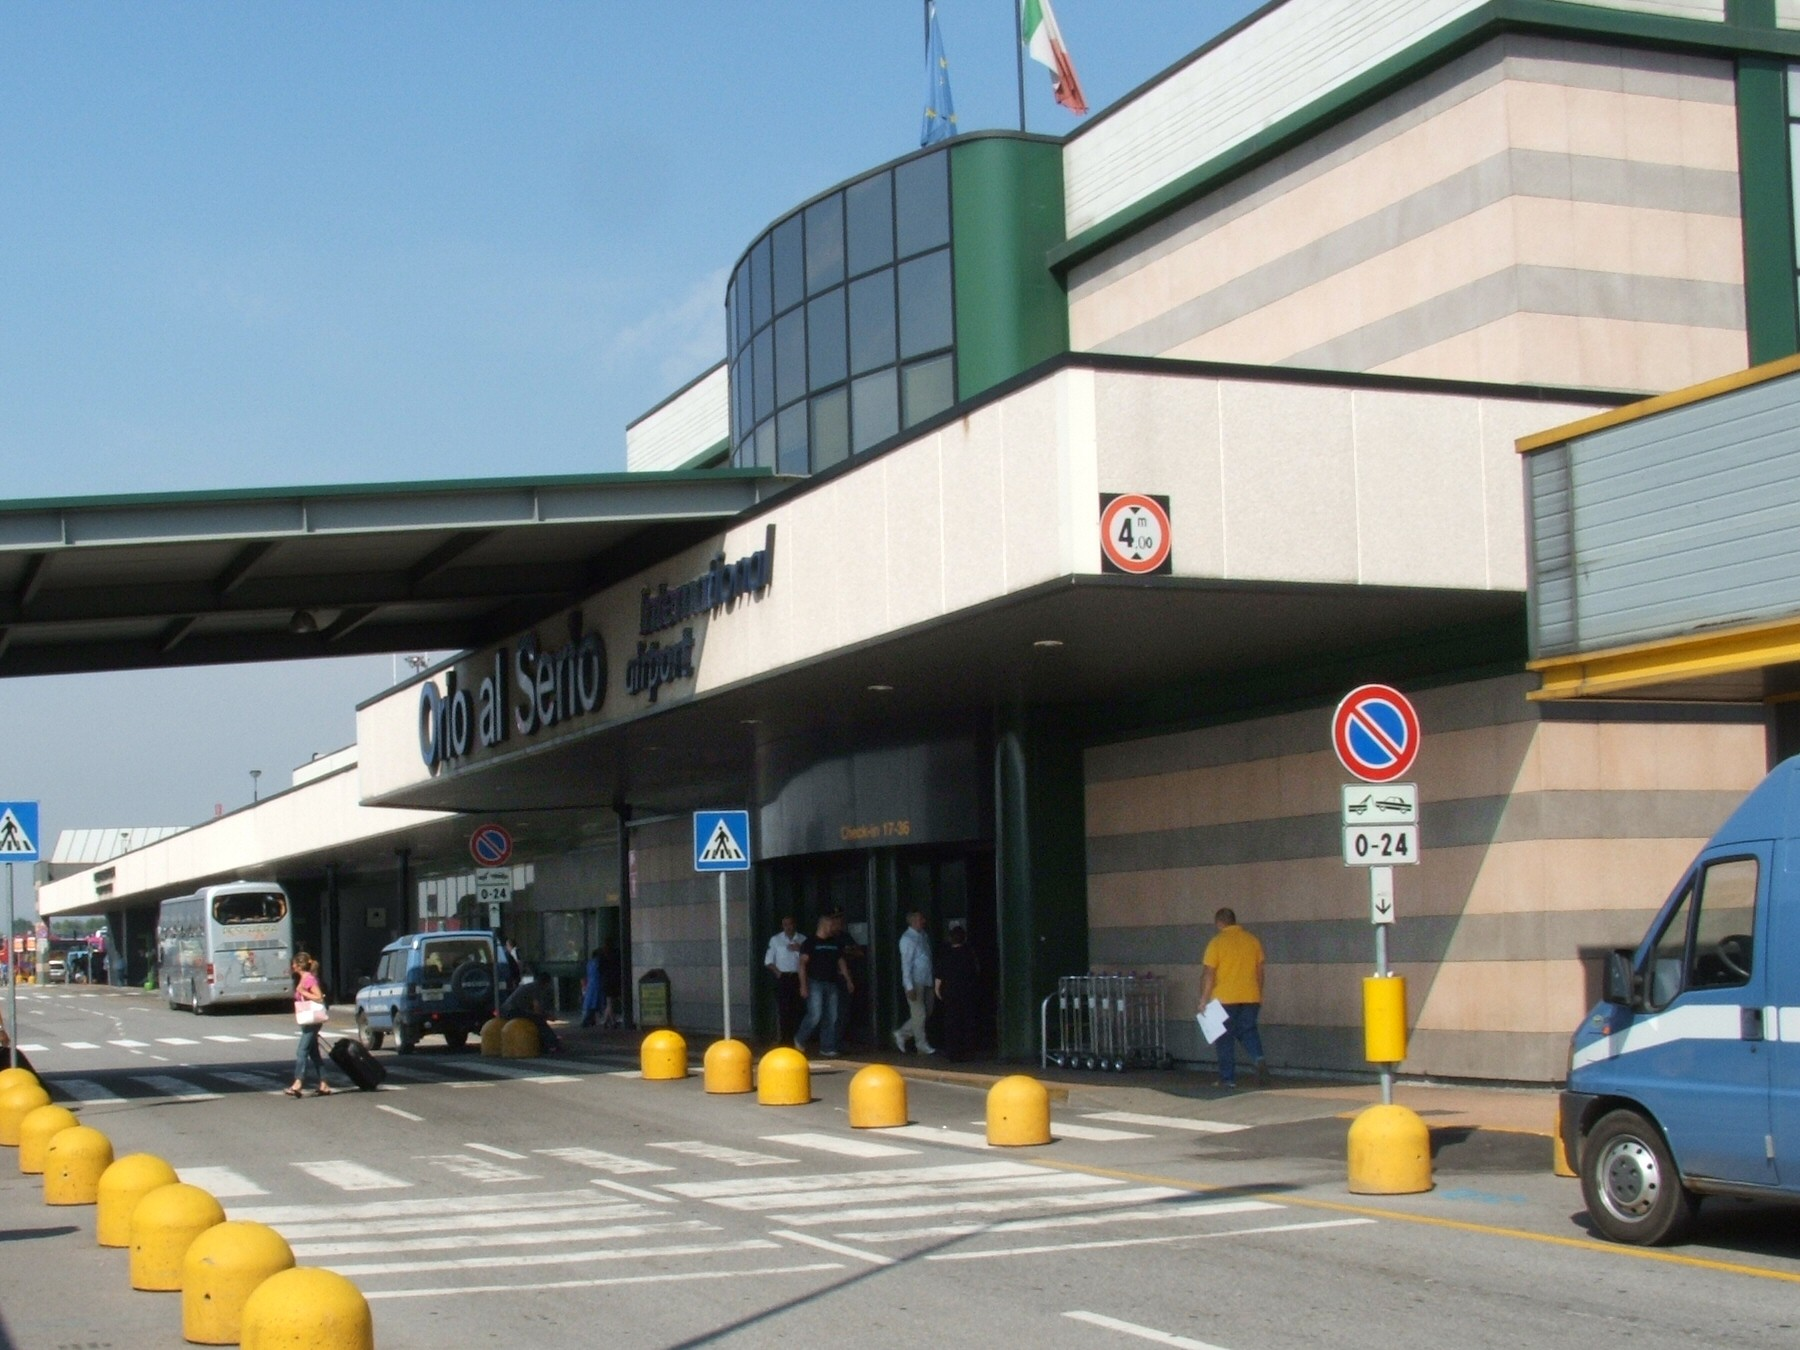 altamiro carrilho aeroporto bergamo - photo#1